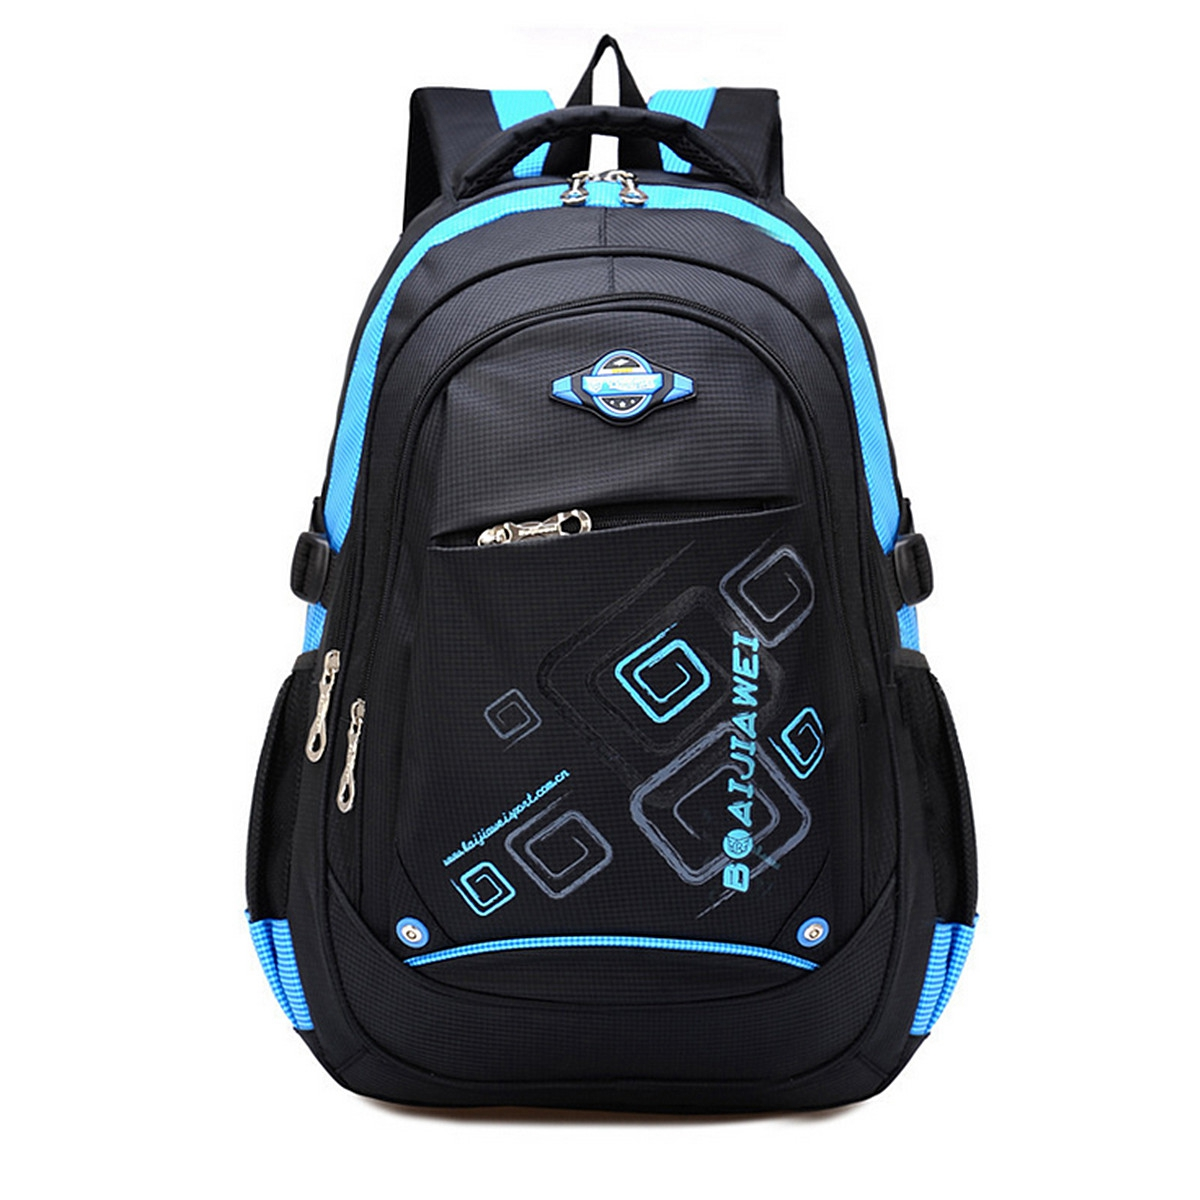 83ba9a4345 Waterproof Children School Bag Girls Boys Travel Backpack Shoulder Bag. 3.  ...